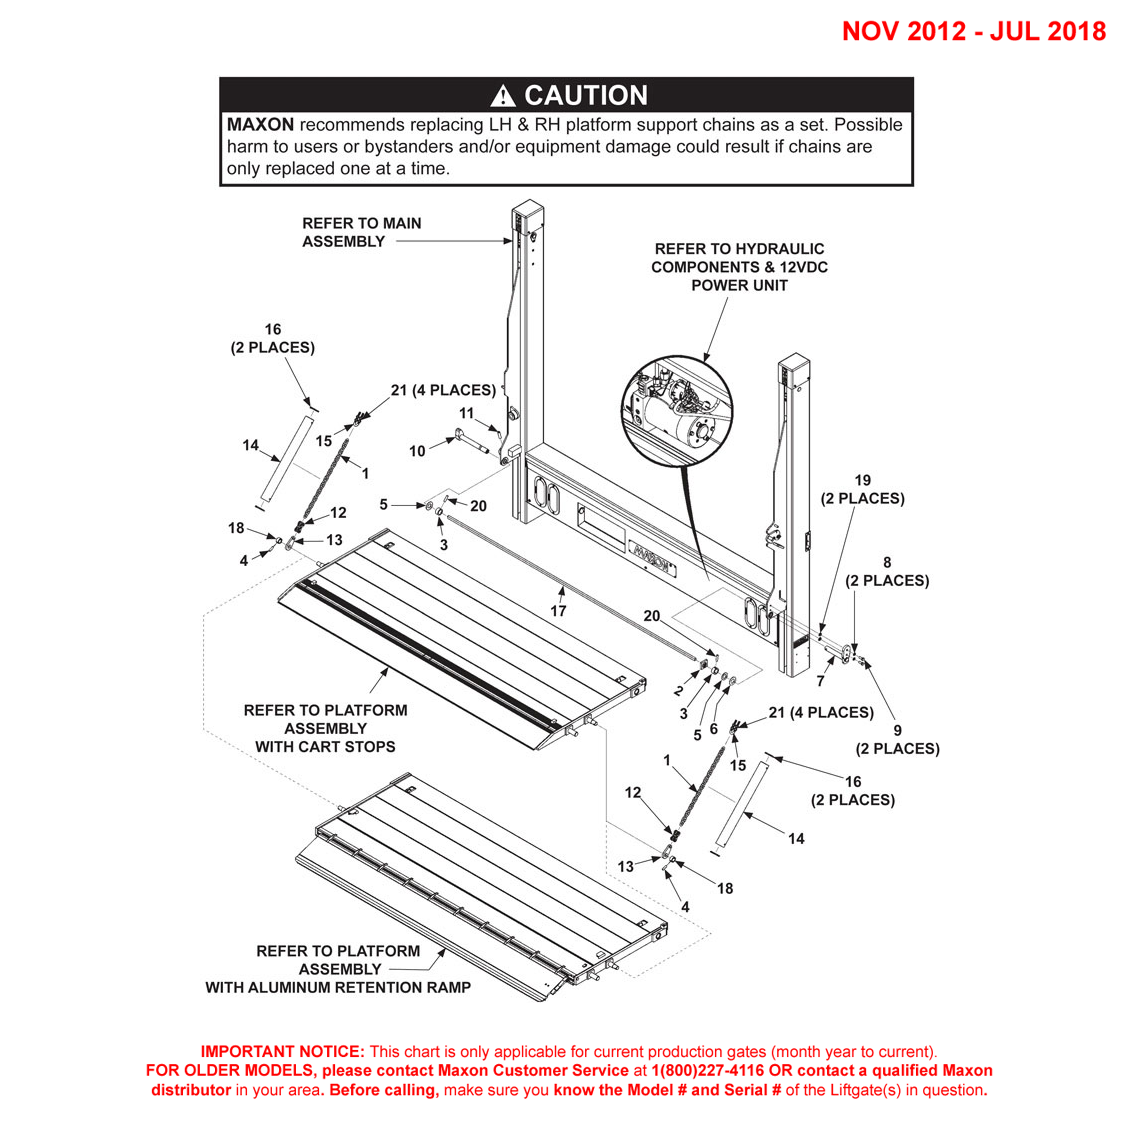 DMD (Nov 2012 - Jul 2018) Single Torsion Bar 1-Piece Platform Final Assembly With Cartstop OR Aluminum Retention Ramp